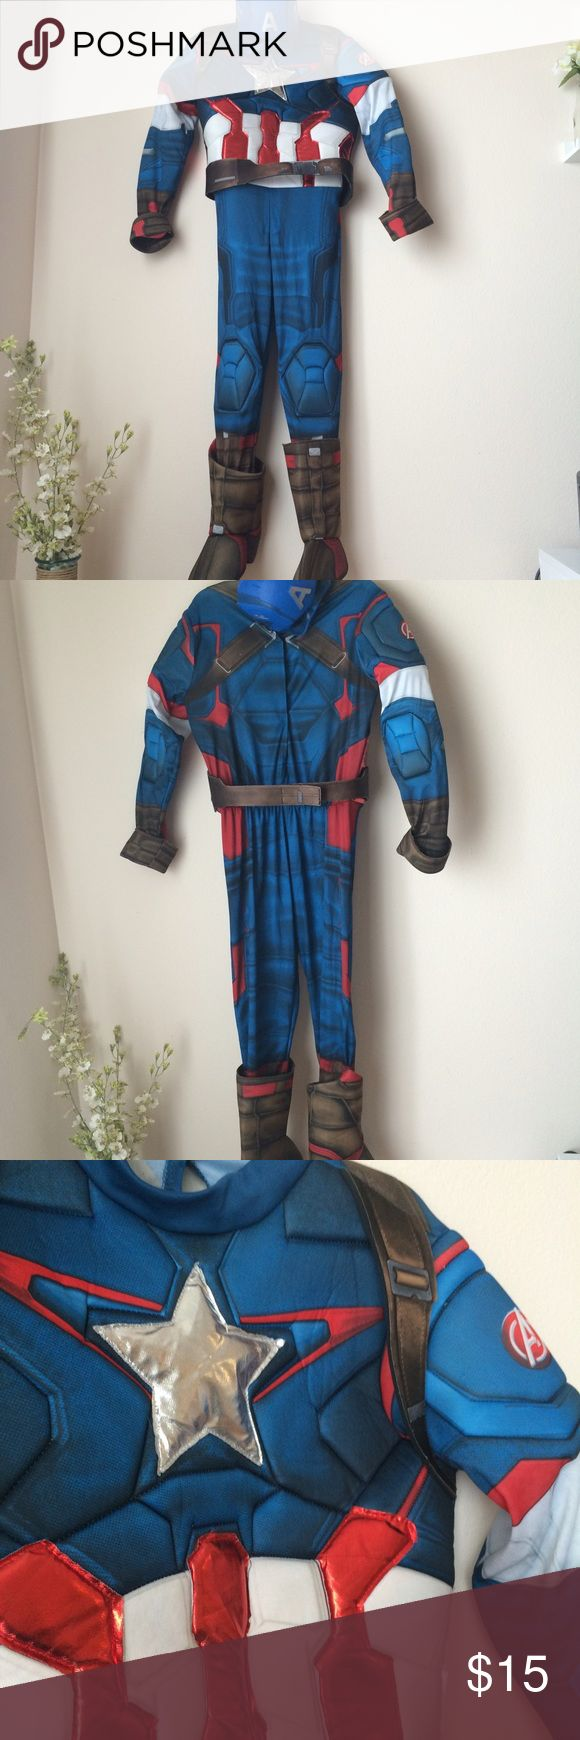 Avenger Captain America Costume Kids Complete Captain America Civil War Costume for kids. Used once. Includes everything shown. Tobacco free home. Marvel Costumes Superhero